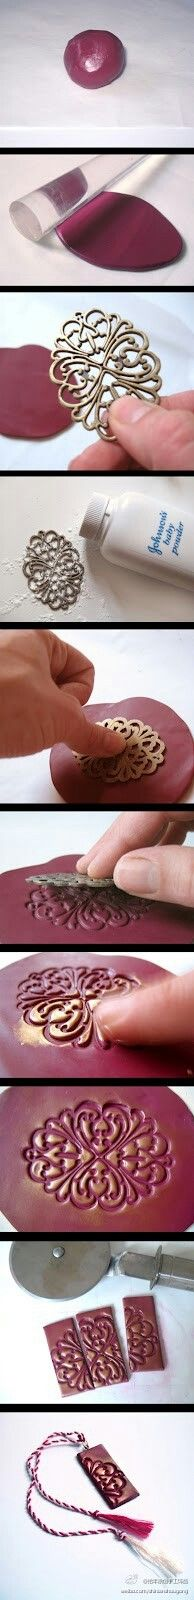 How to make an Impression in clay - and impress your friends & family! :D